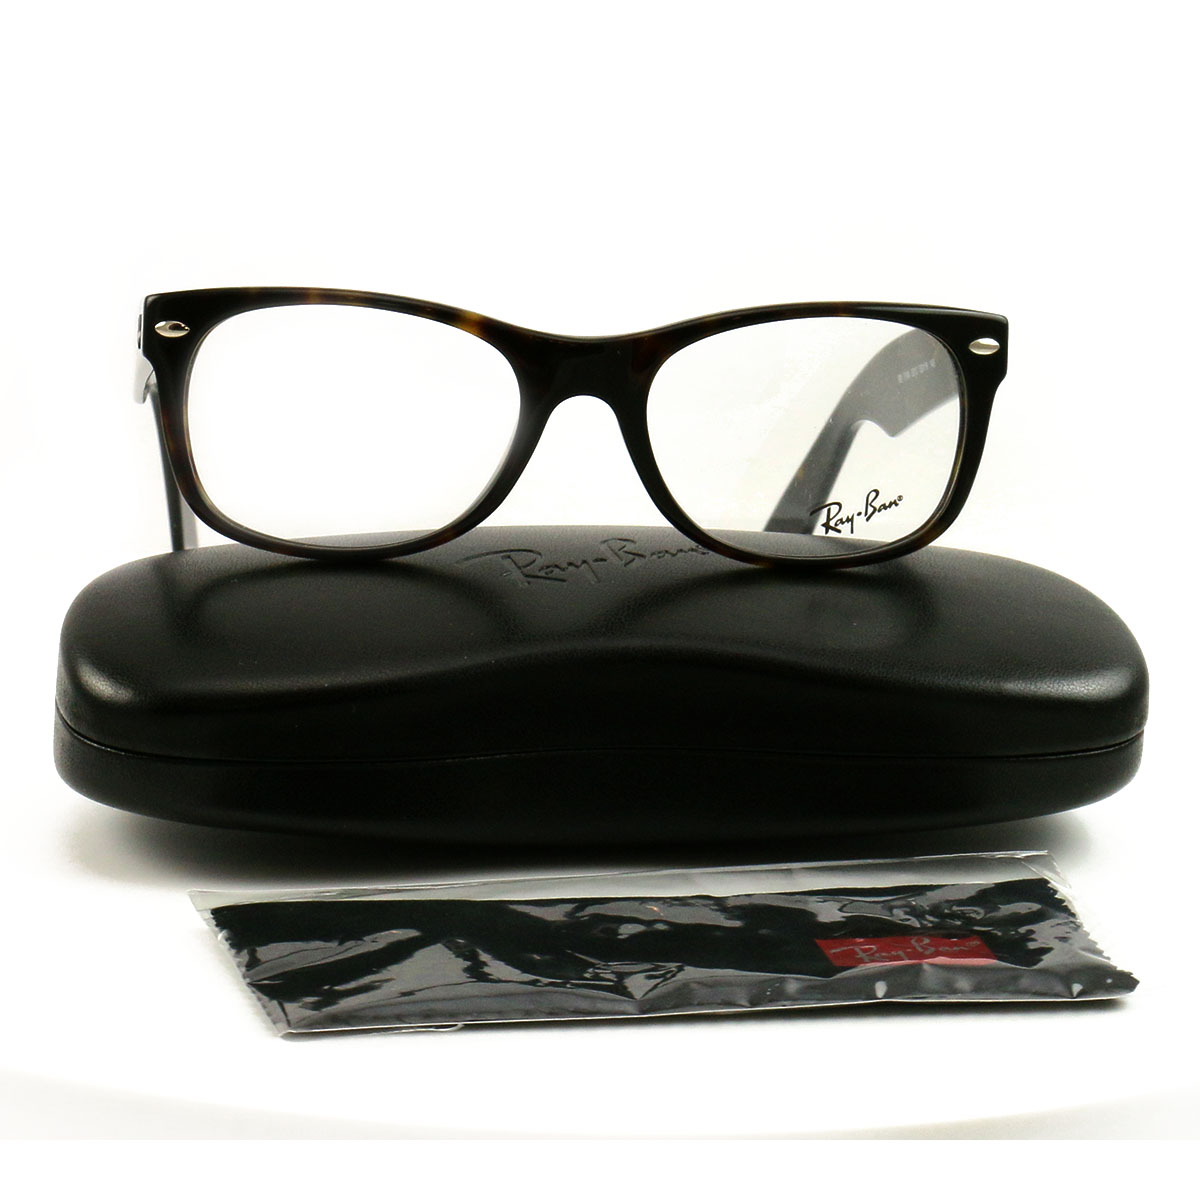 e8f00d8203 Details about New Ray Ban Eyeglasses RX 5184-2012 Havana Acetate 52 18 145  Authentic